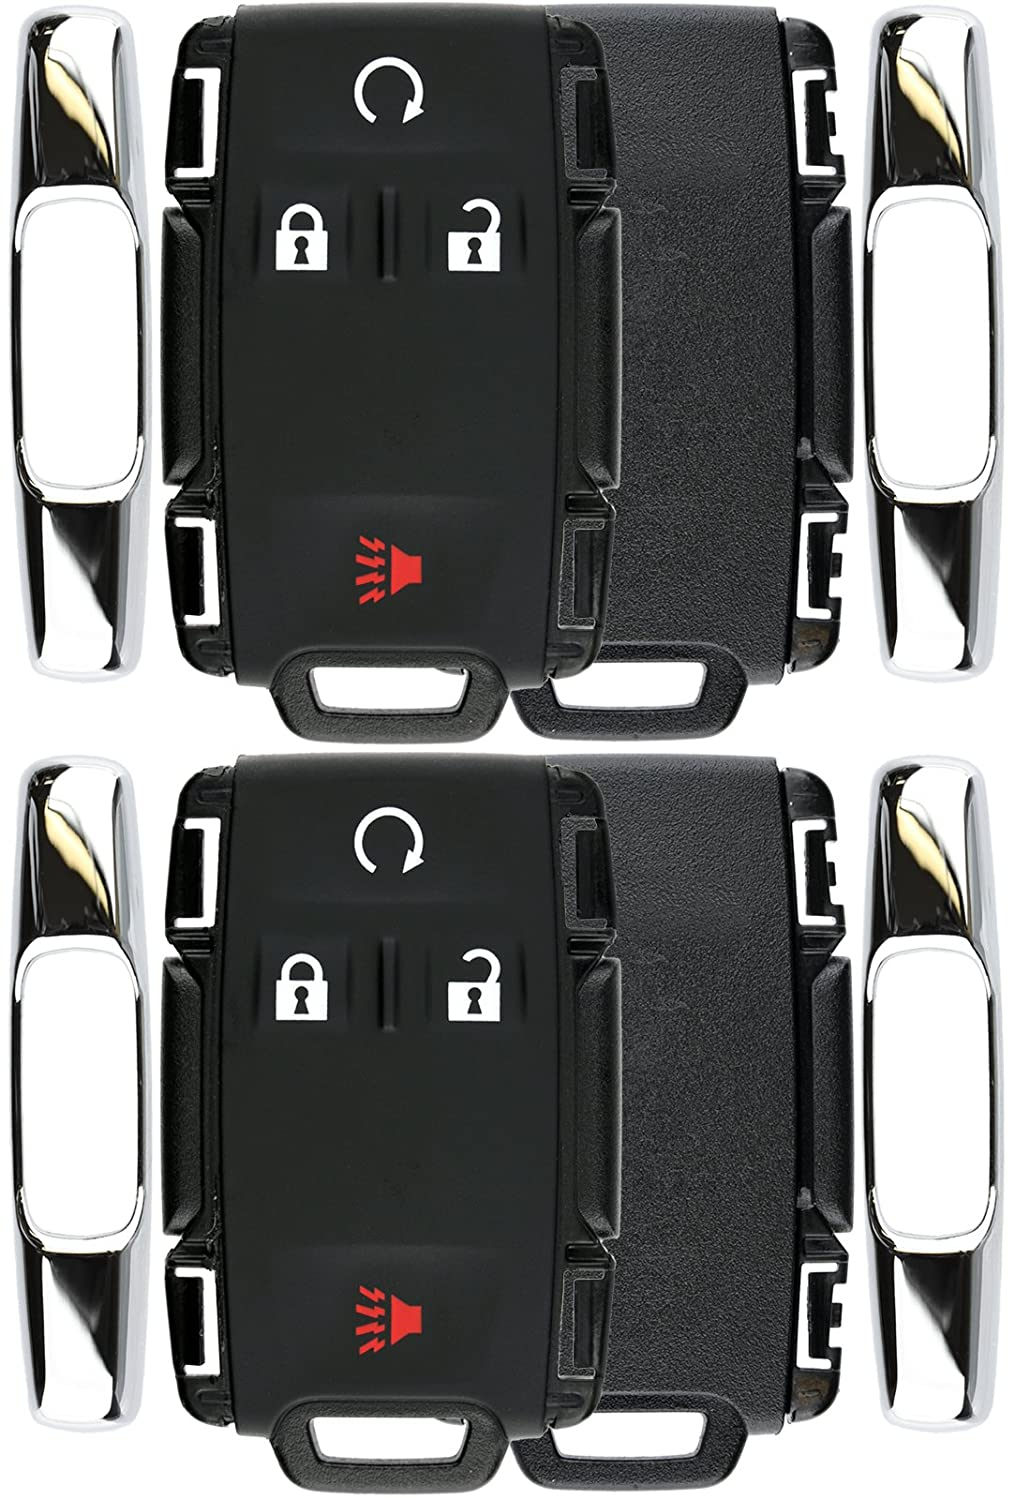 Pack of 2 KeylessOption Keyless Entry Remote Control Car Key Fob Case Shell Button Pad Outer Cover for GMC Chevy M3N-32337100